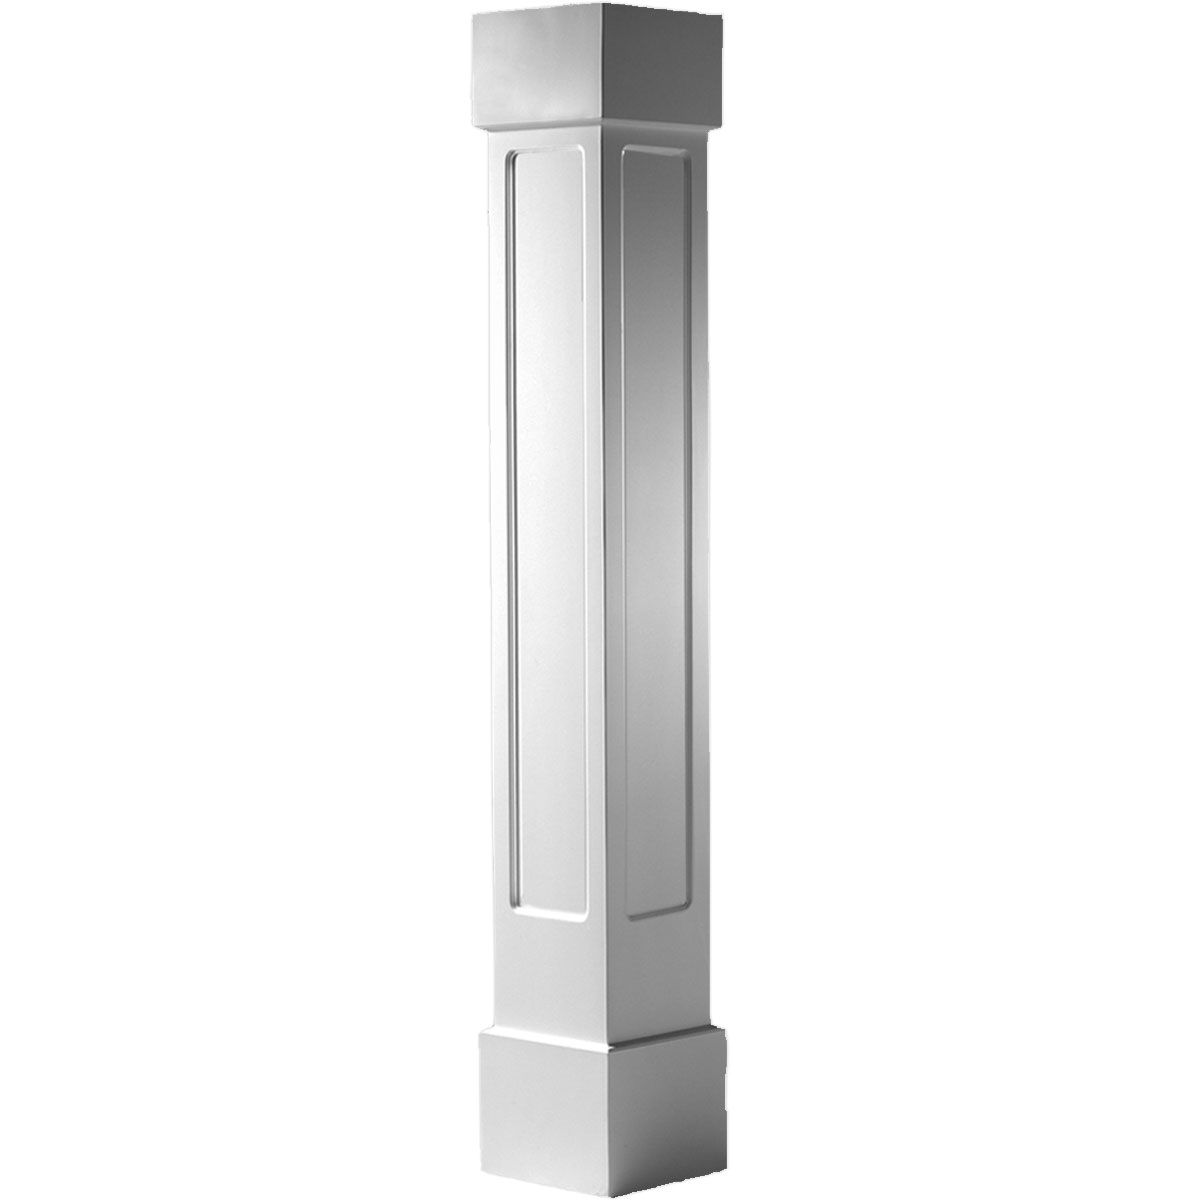 Craftsman classic square non tapered recessed panel column for Craftsman columns